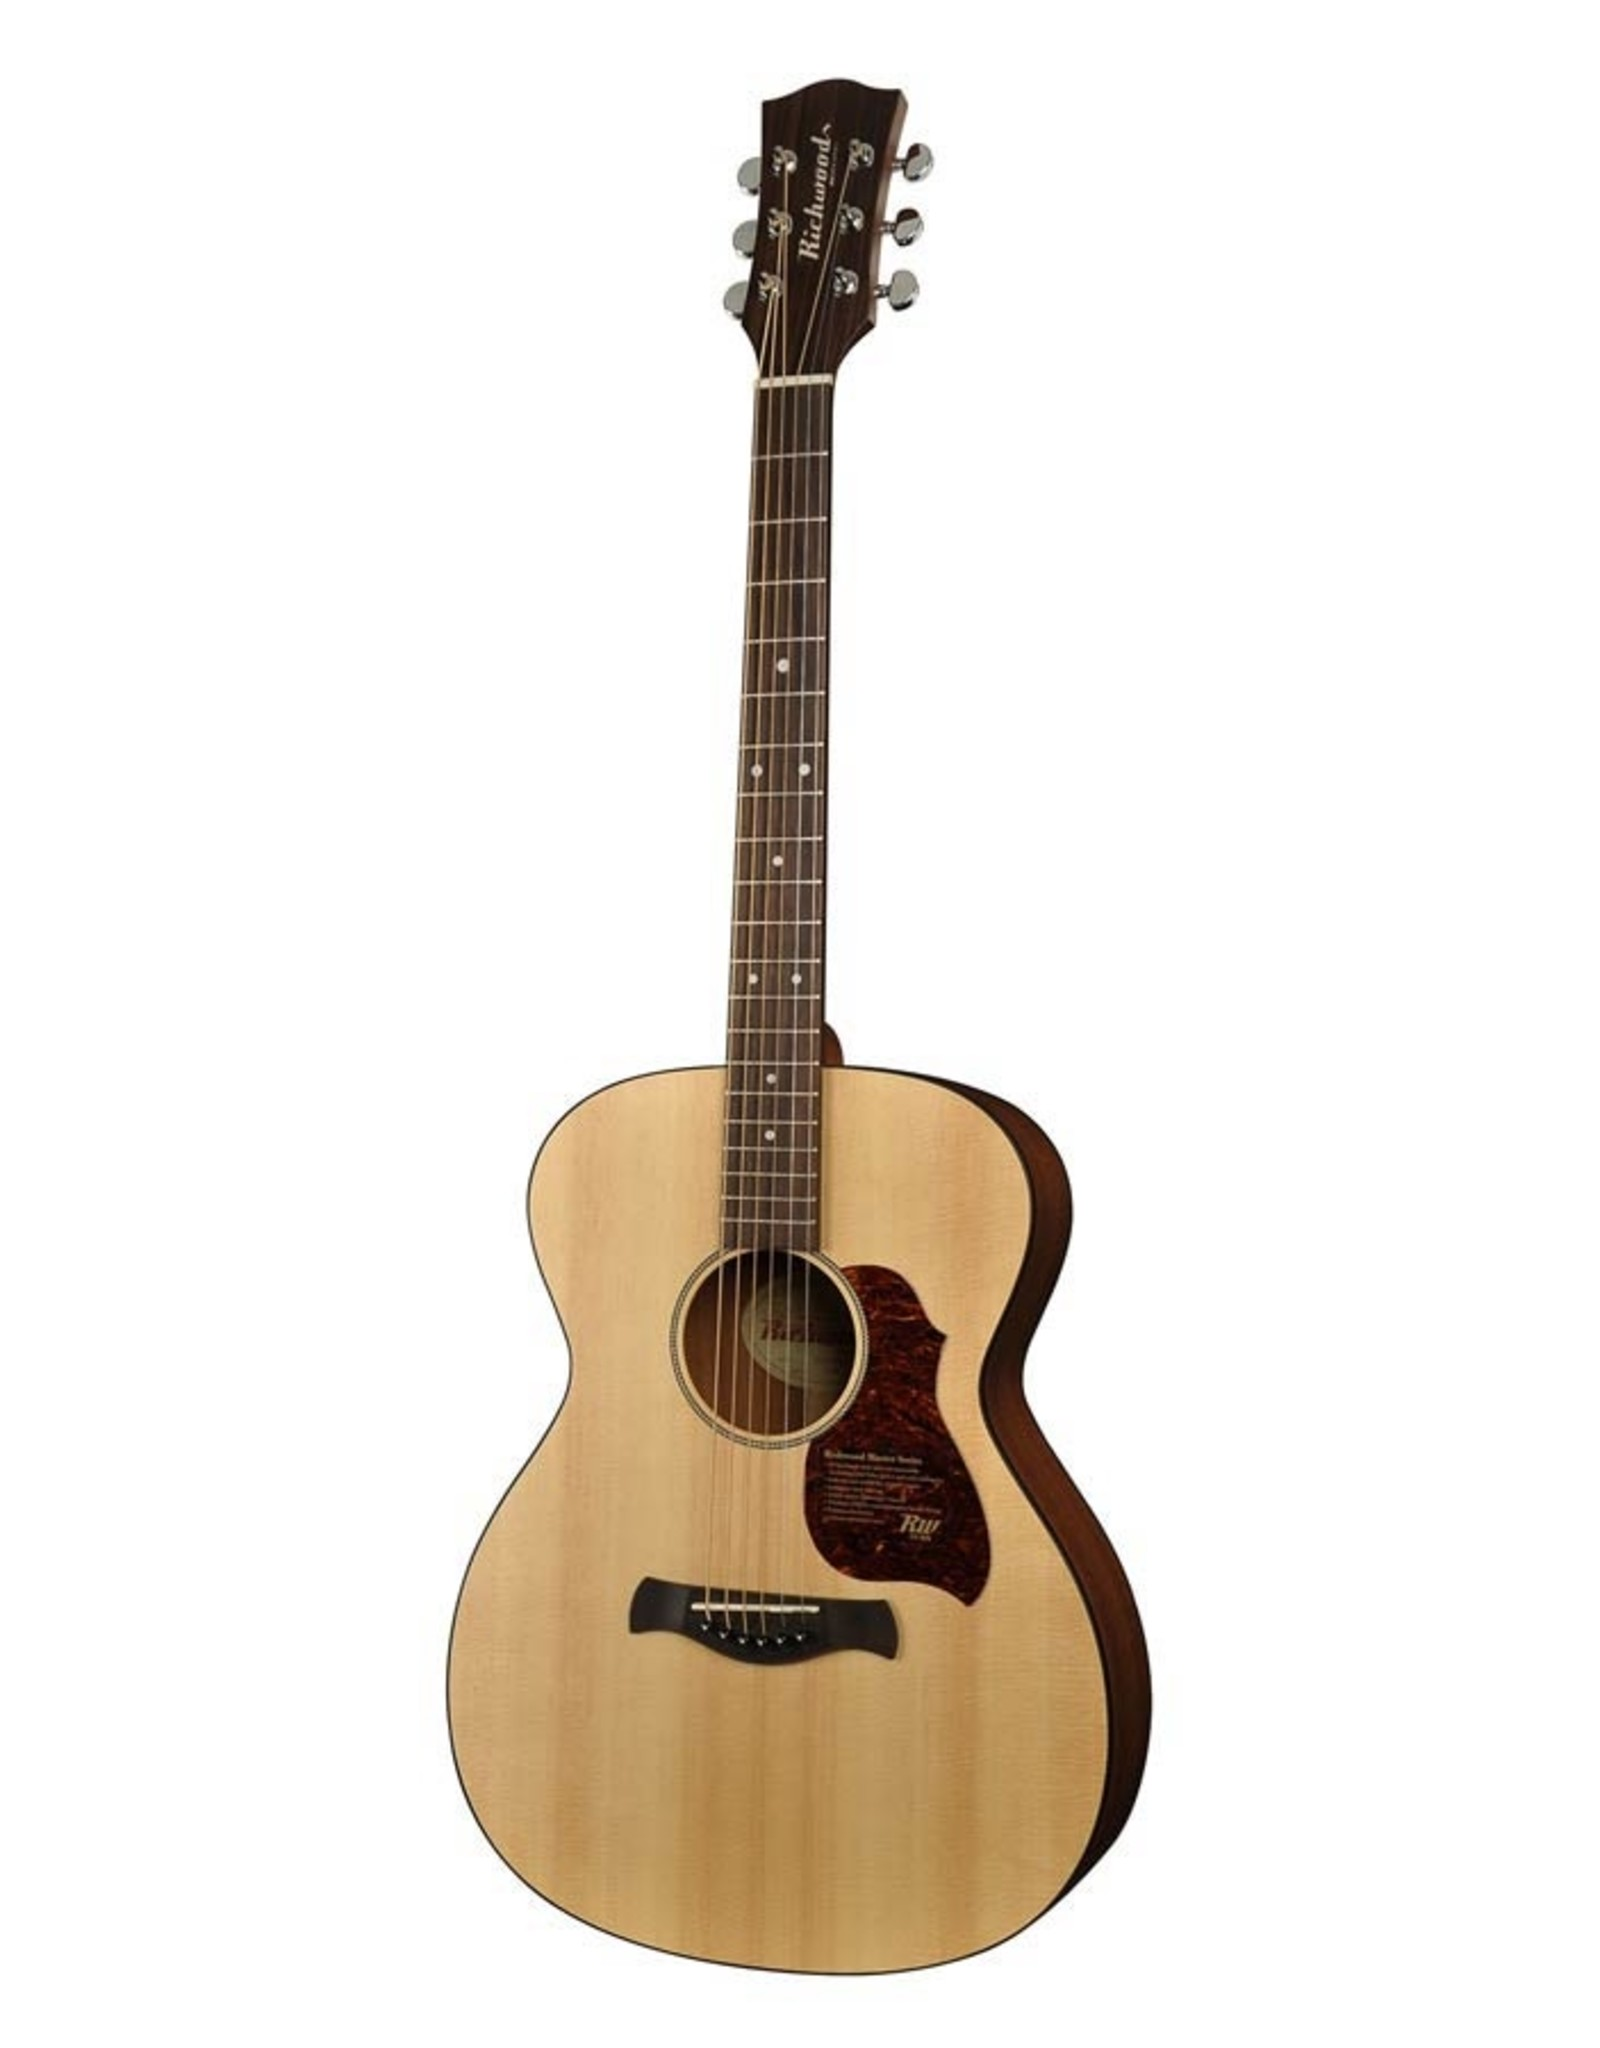 Richwood Richwood A-20 Master series auditorium OOO guitar